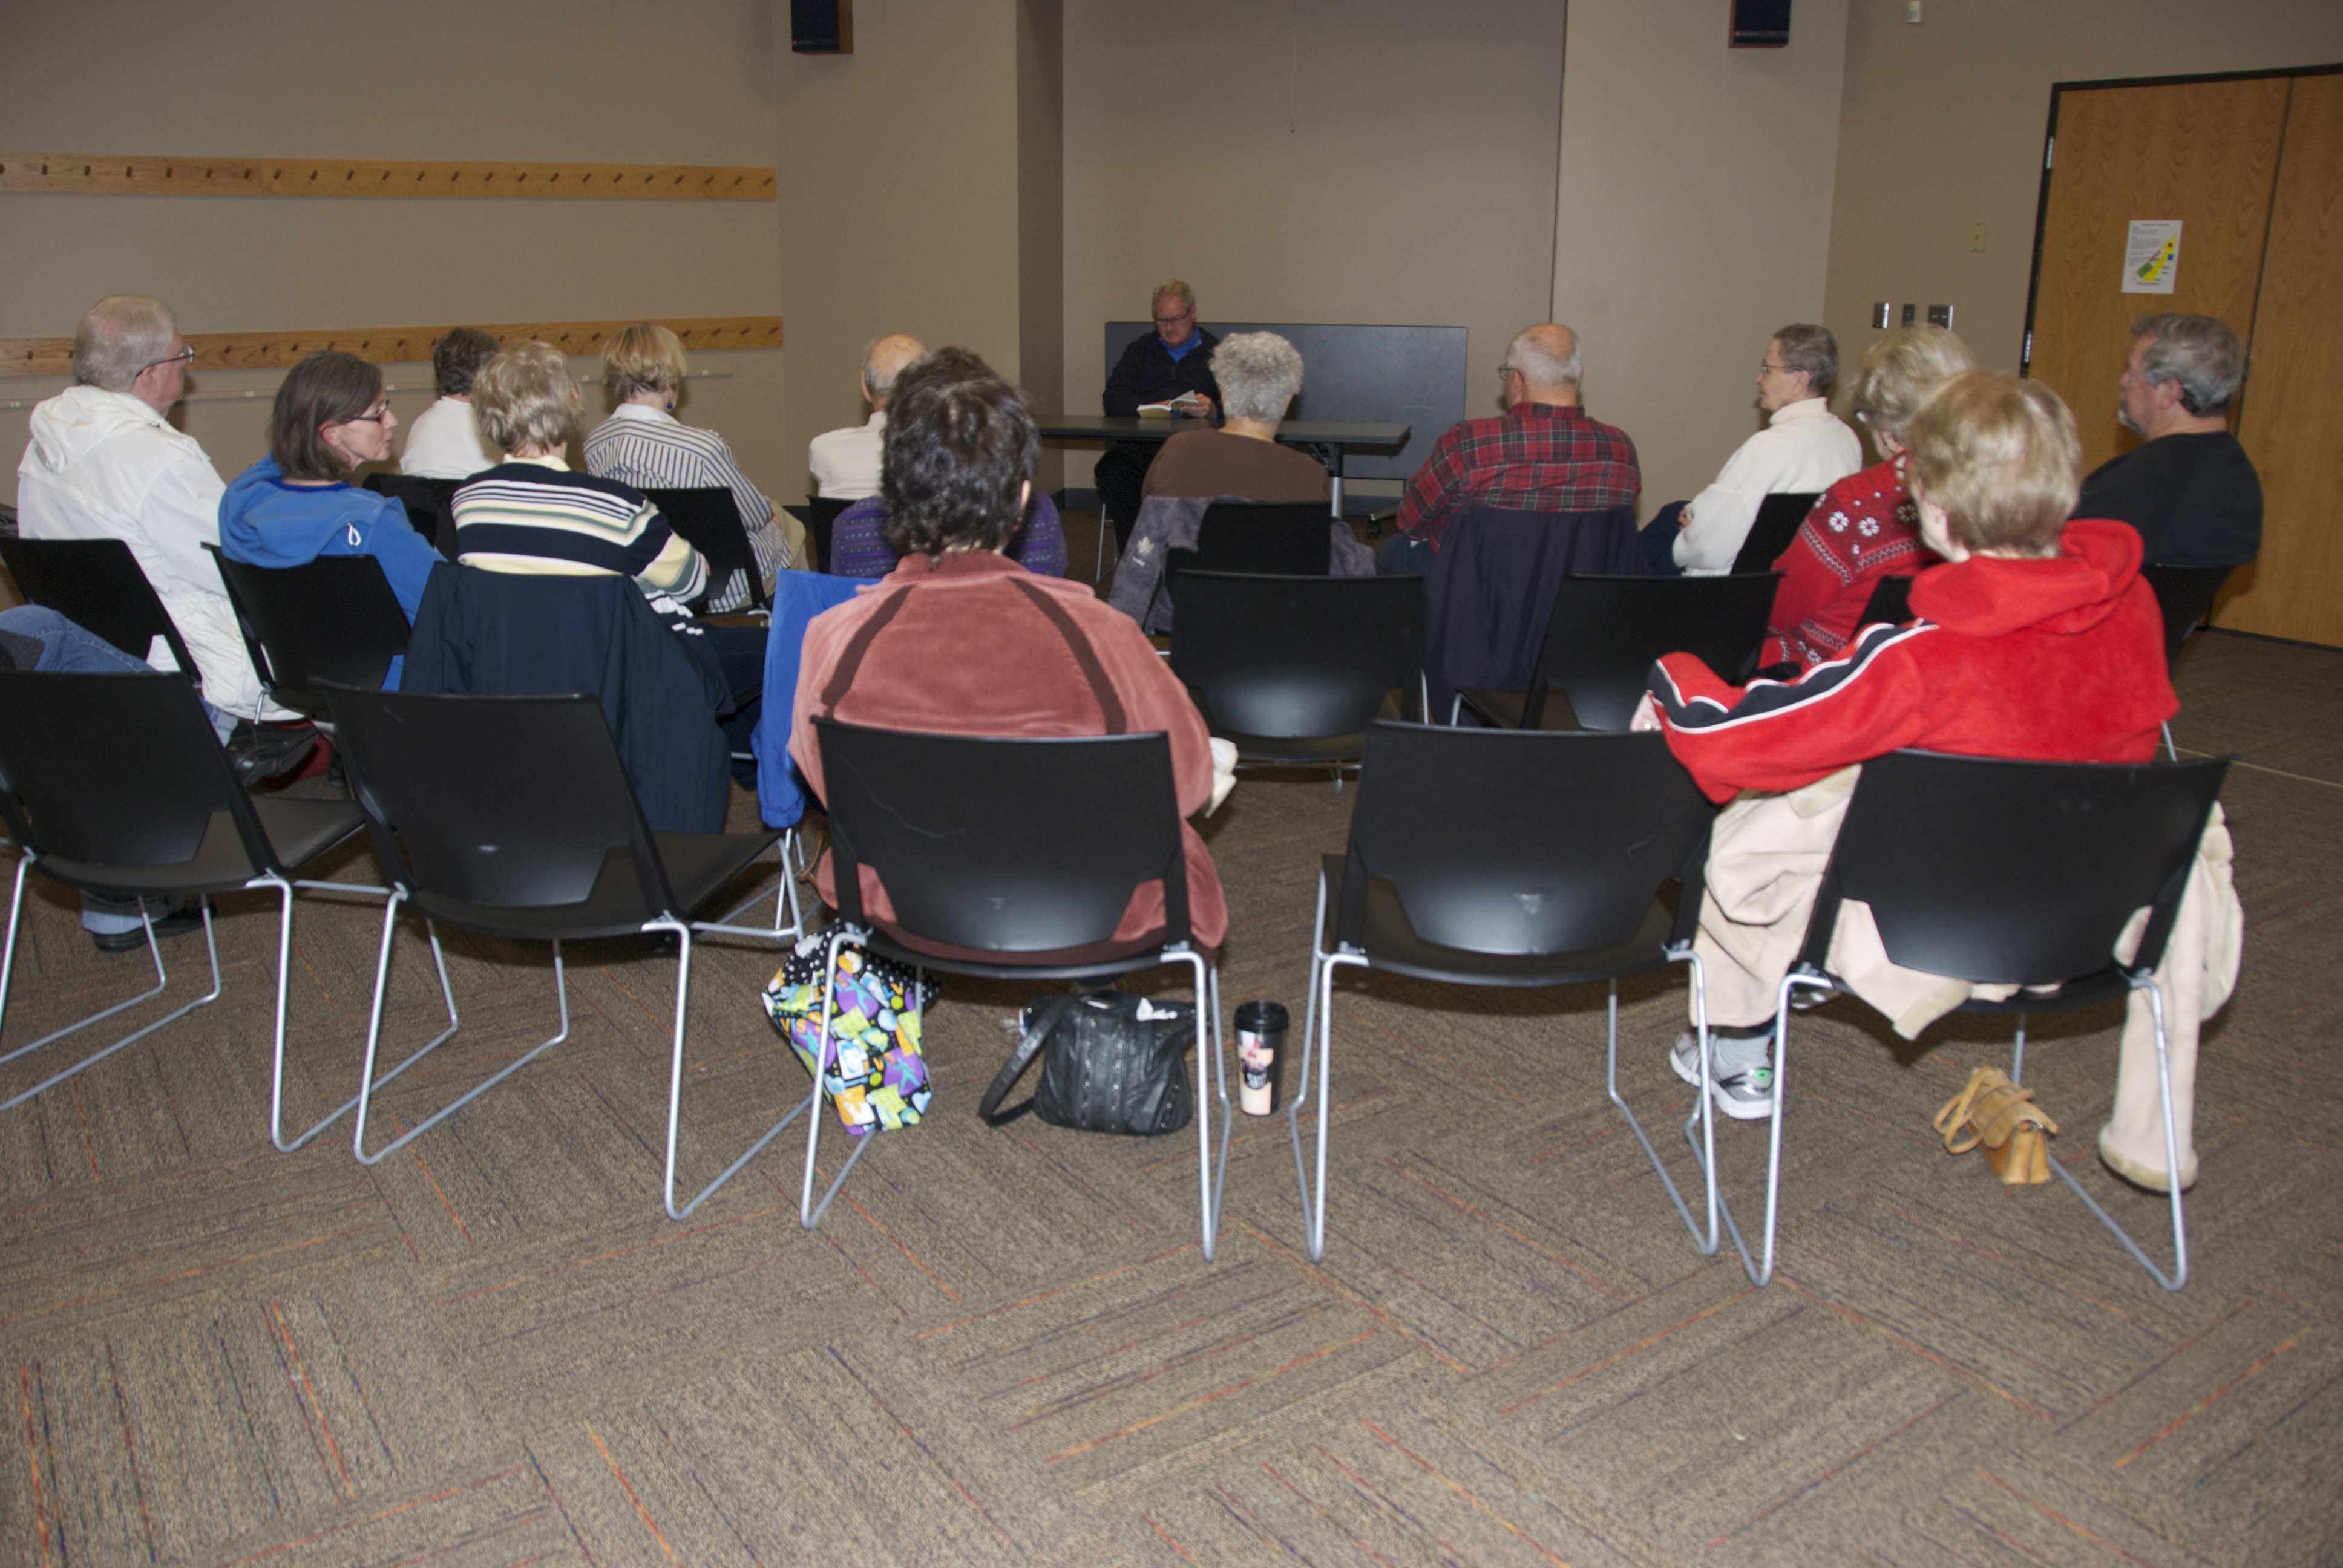 Wynn Johnson - Rockford Road Library 11-3-14